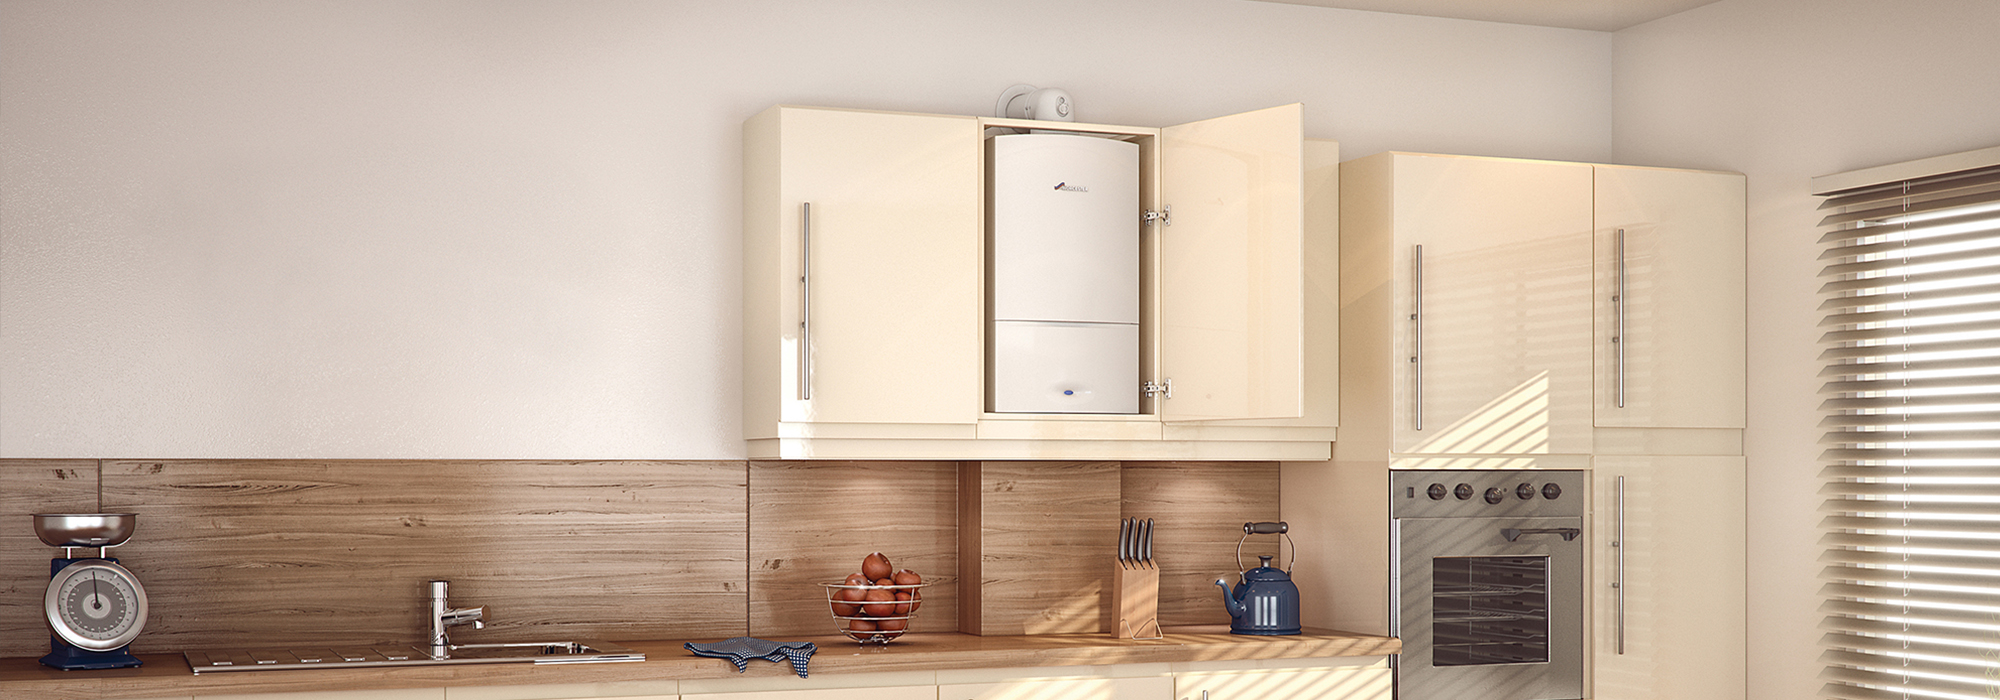 Four Things To Know Before Buying a New Boiler